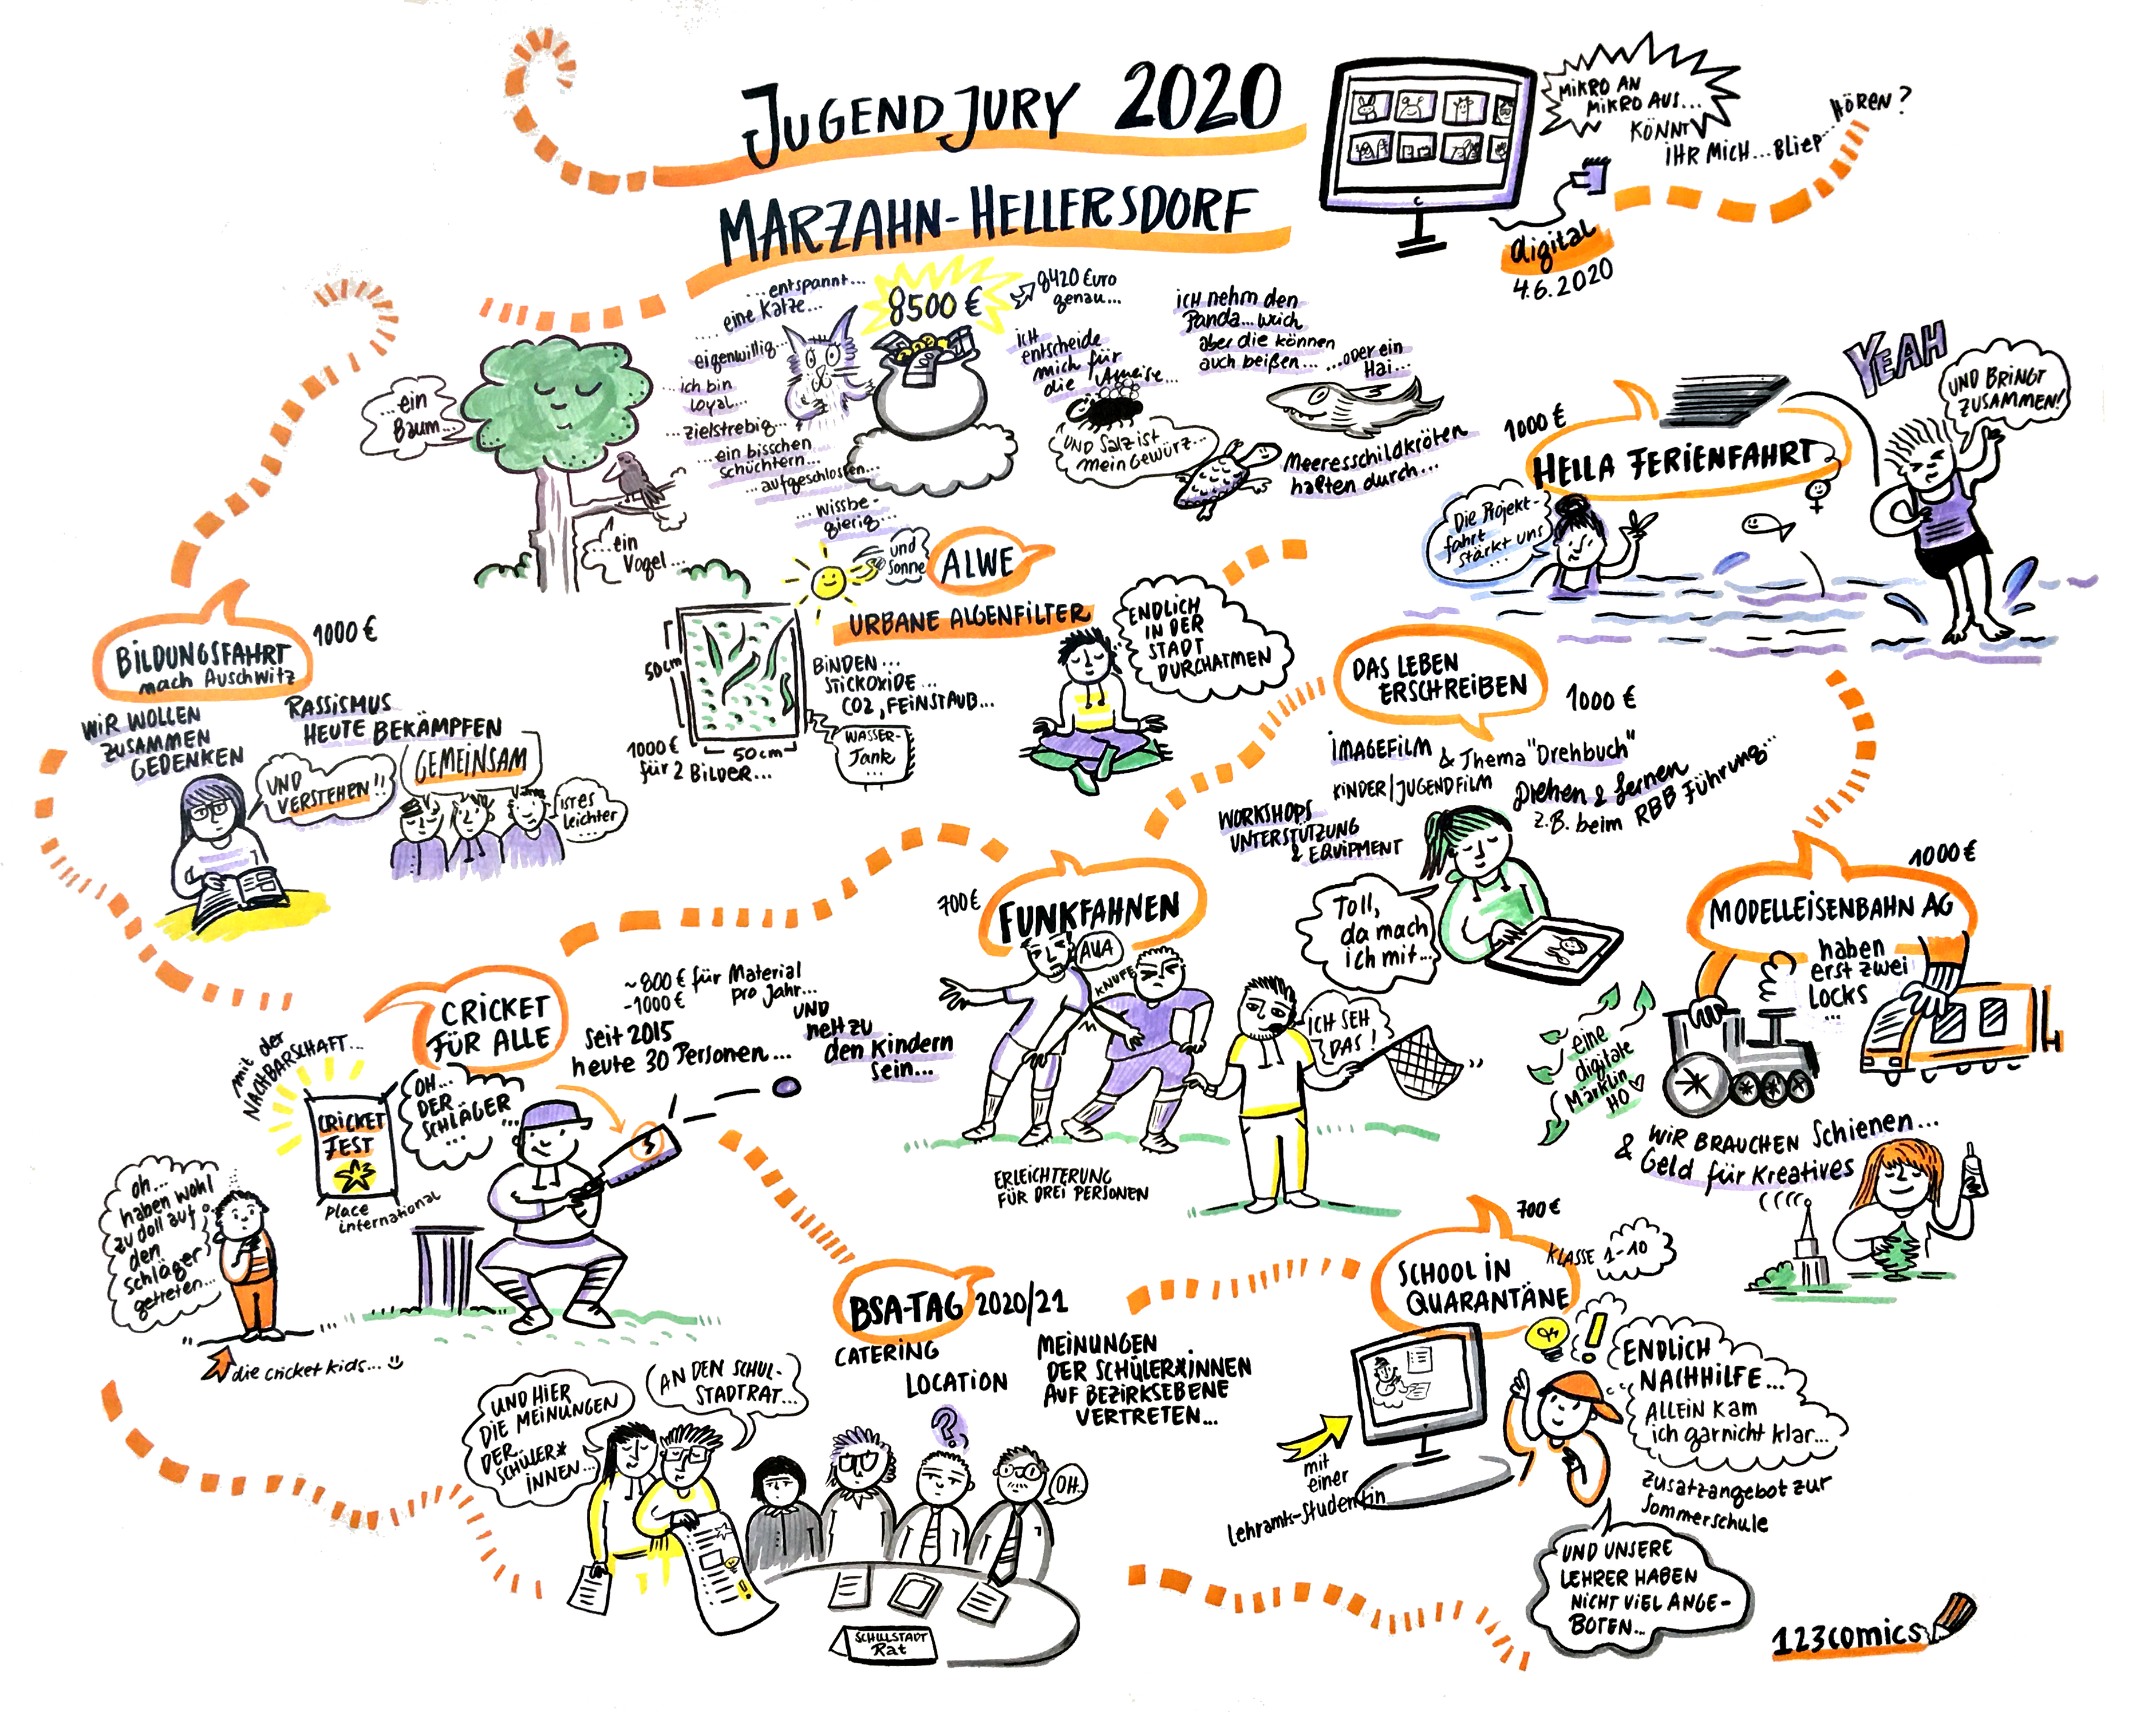 Dokumentation in Form eines graphic recording